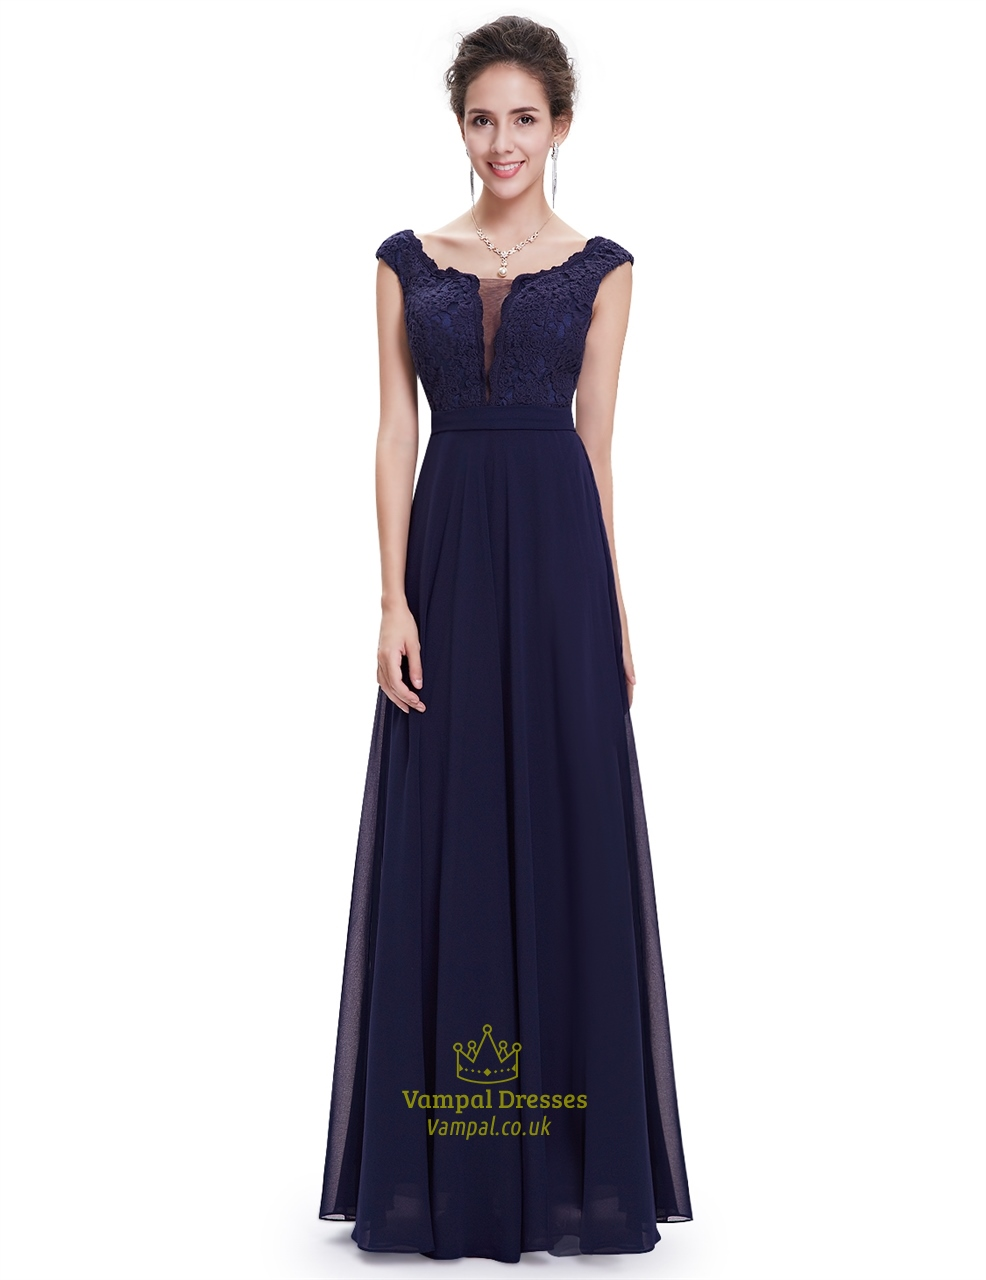 2019 year for women- Navy long blue bridesmaid dresses with sleeves